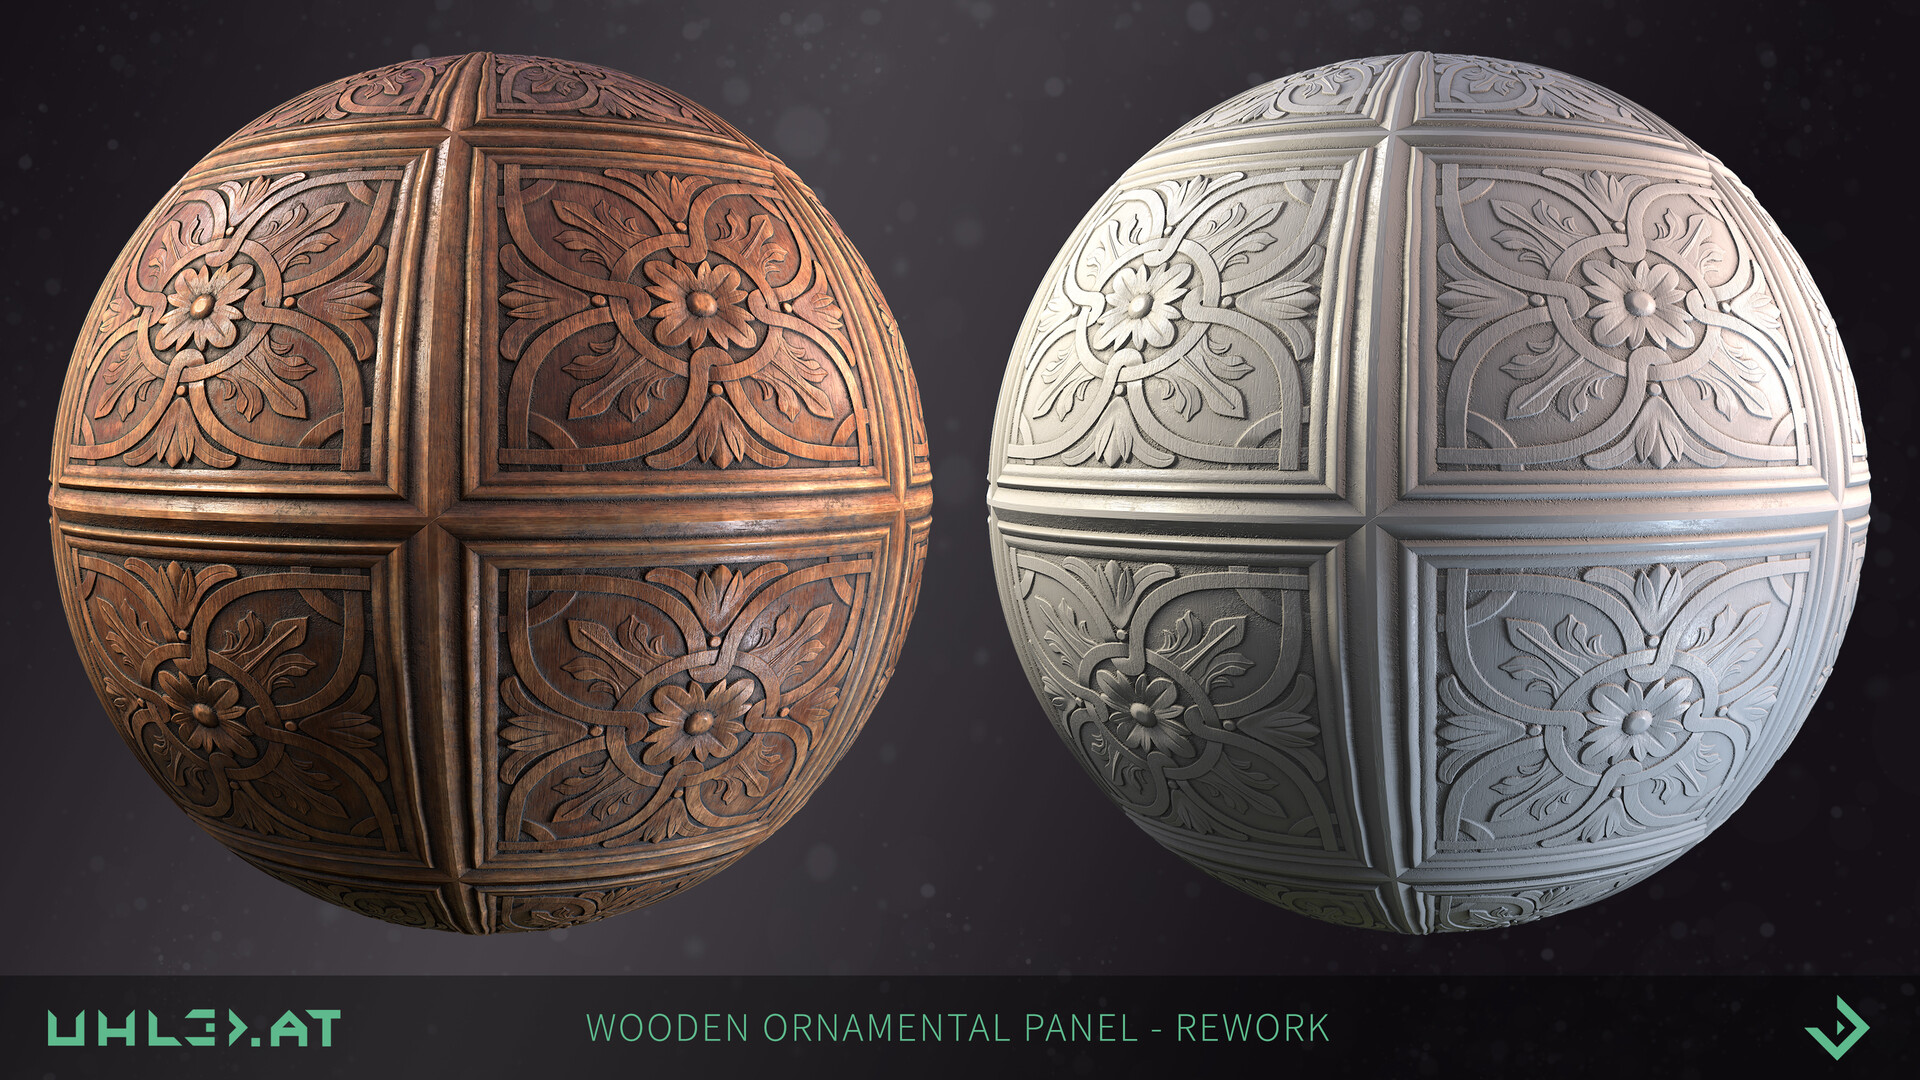 Dominik uhl wood panel ornament rework 01